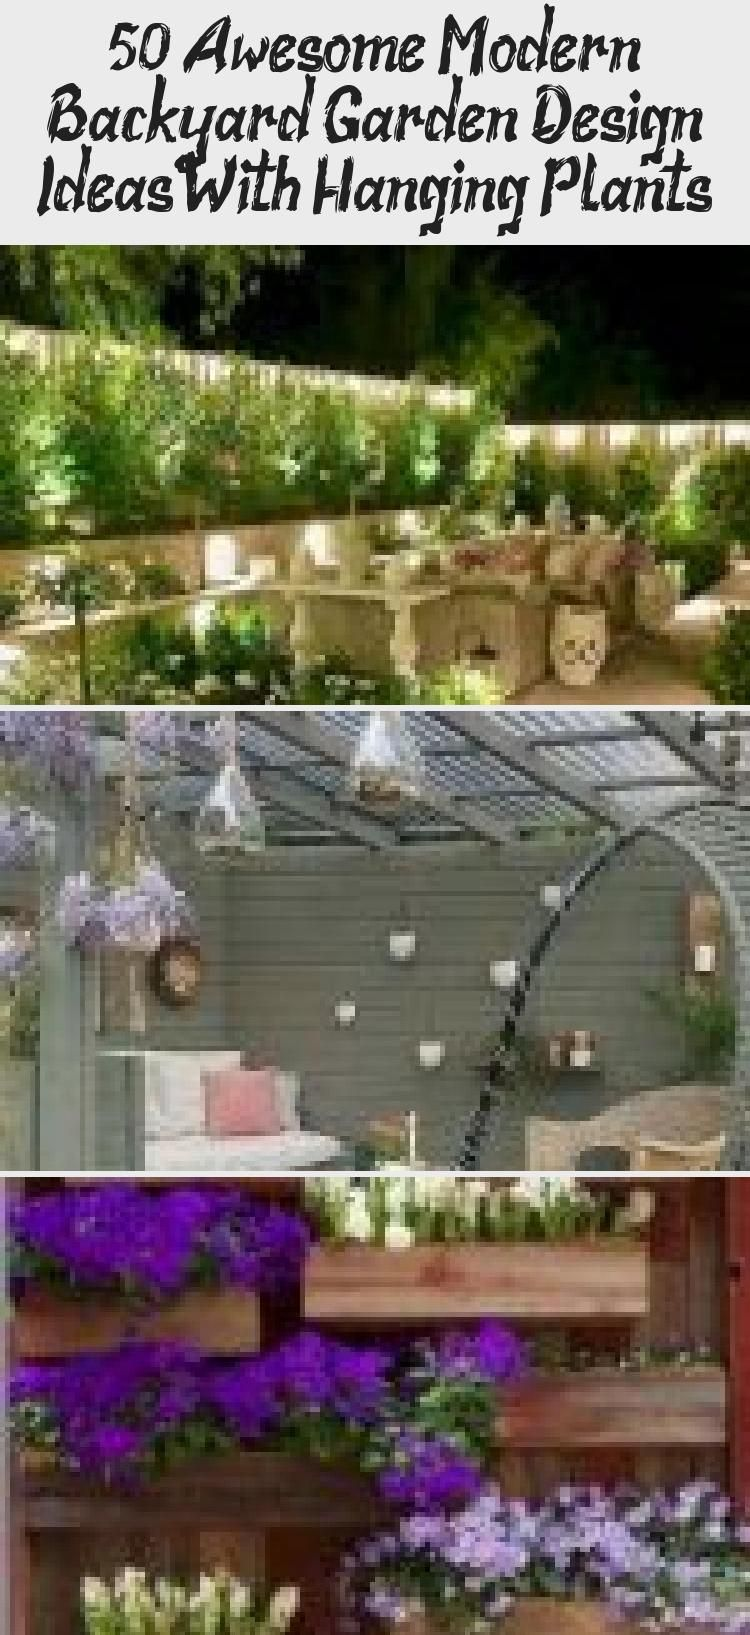 50 Awesome Modern Backyard Garden Design Ideas With Hanging Plants Garten Garten Ideen Beeteinfassung